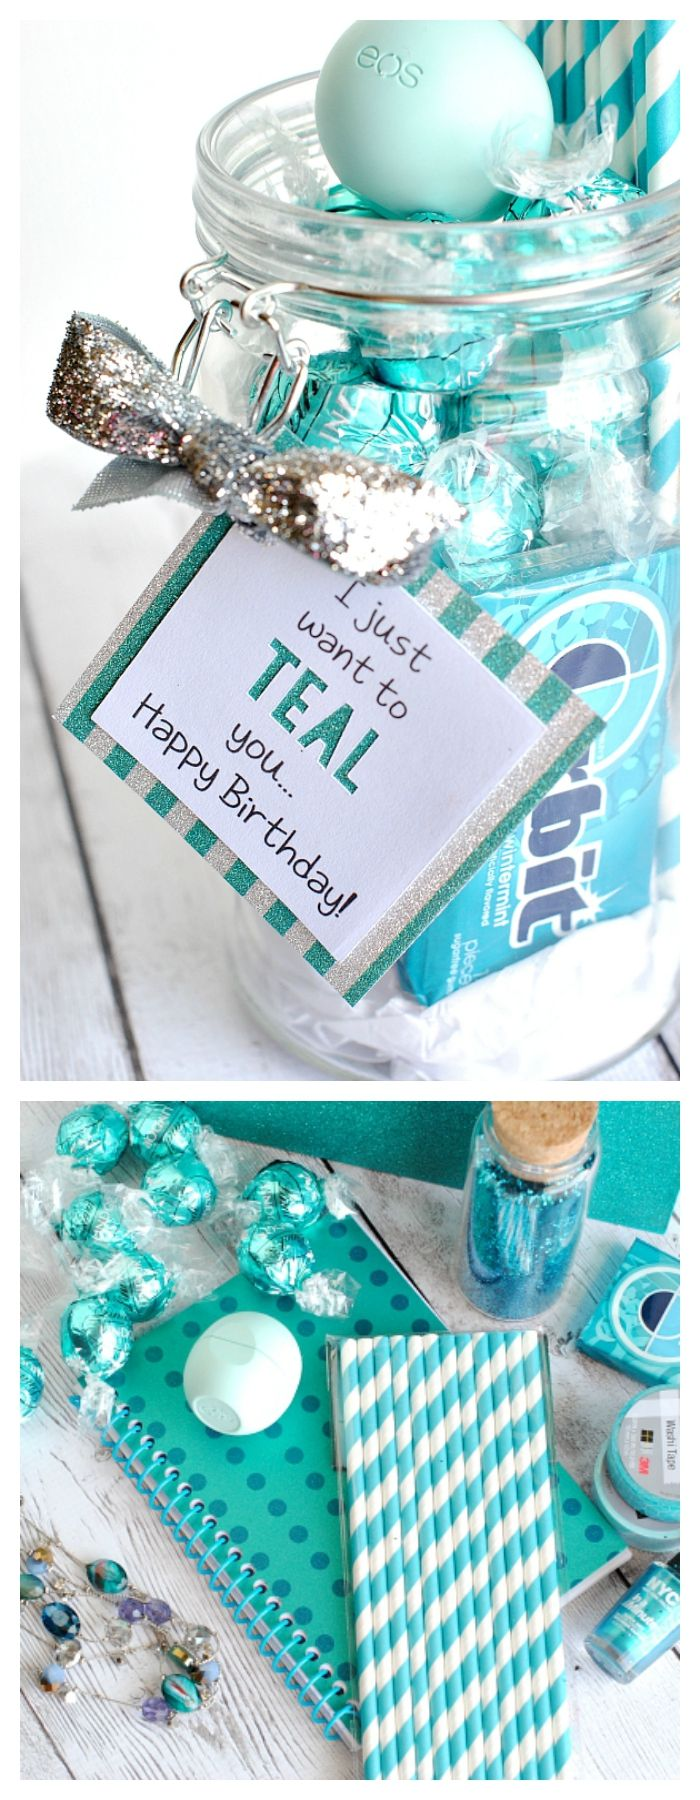 How To Make A Gift Basket For Your Best Friend Ideas